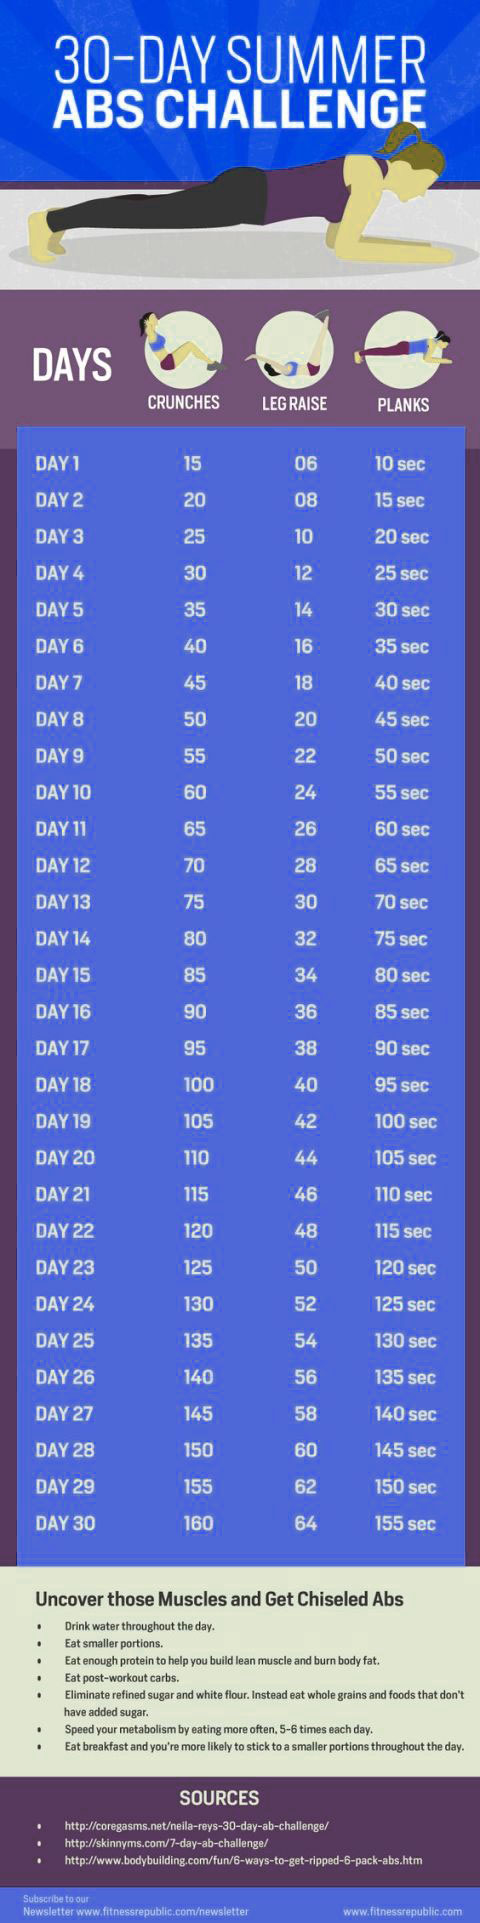 30-day-summer-abs-challenge-Infographic-poster